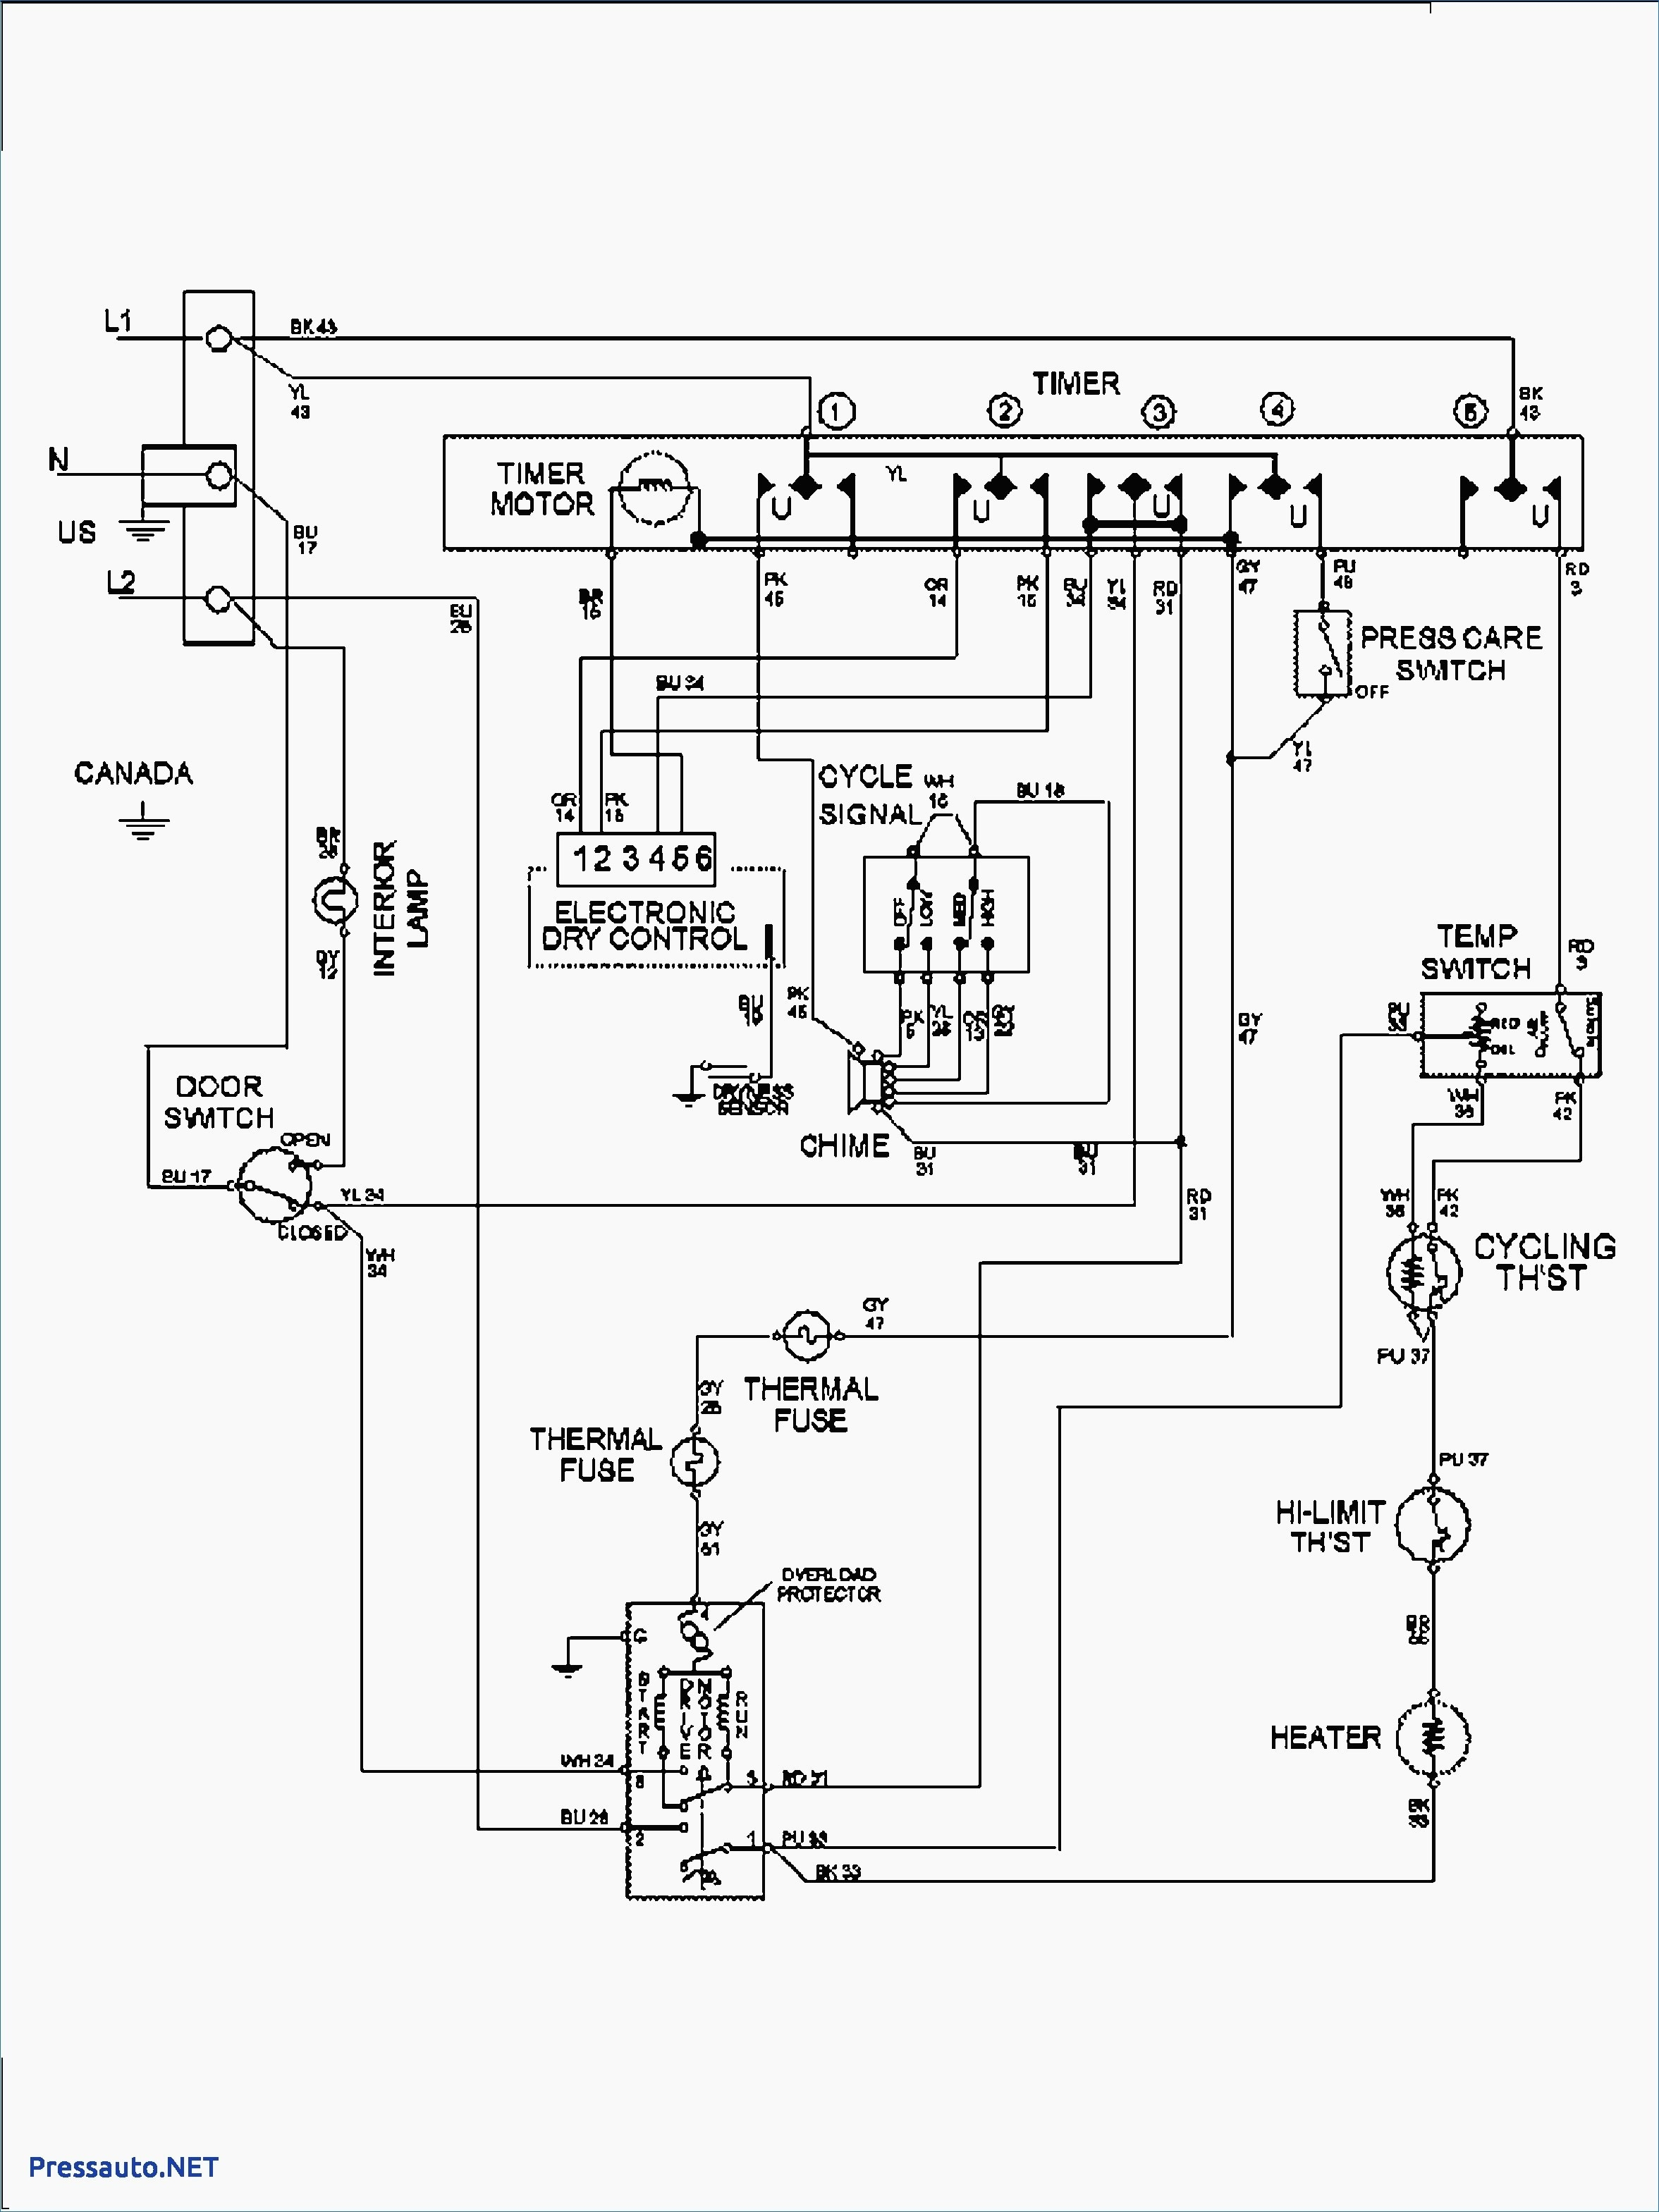 wiring diagram for whirlpool dryer ler4634eq2